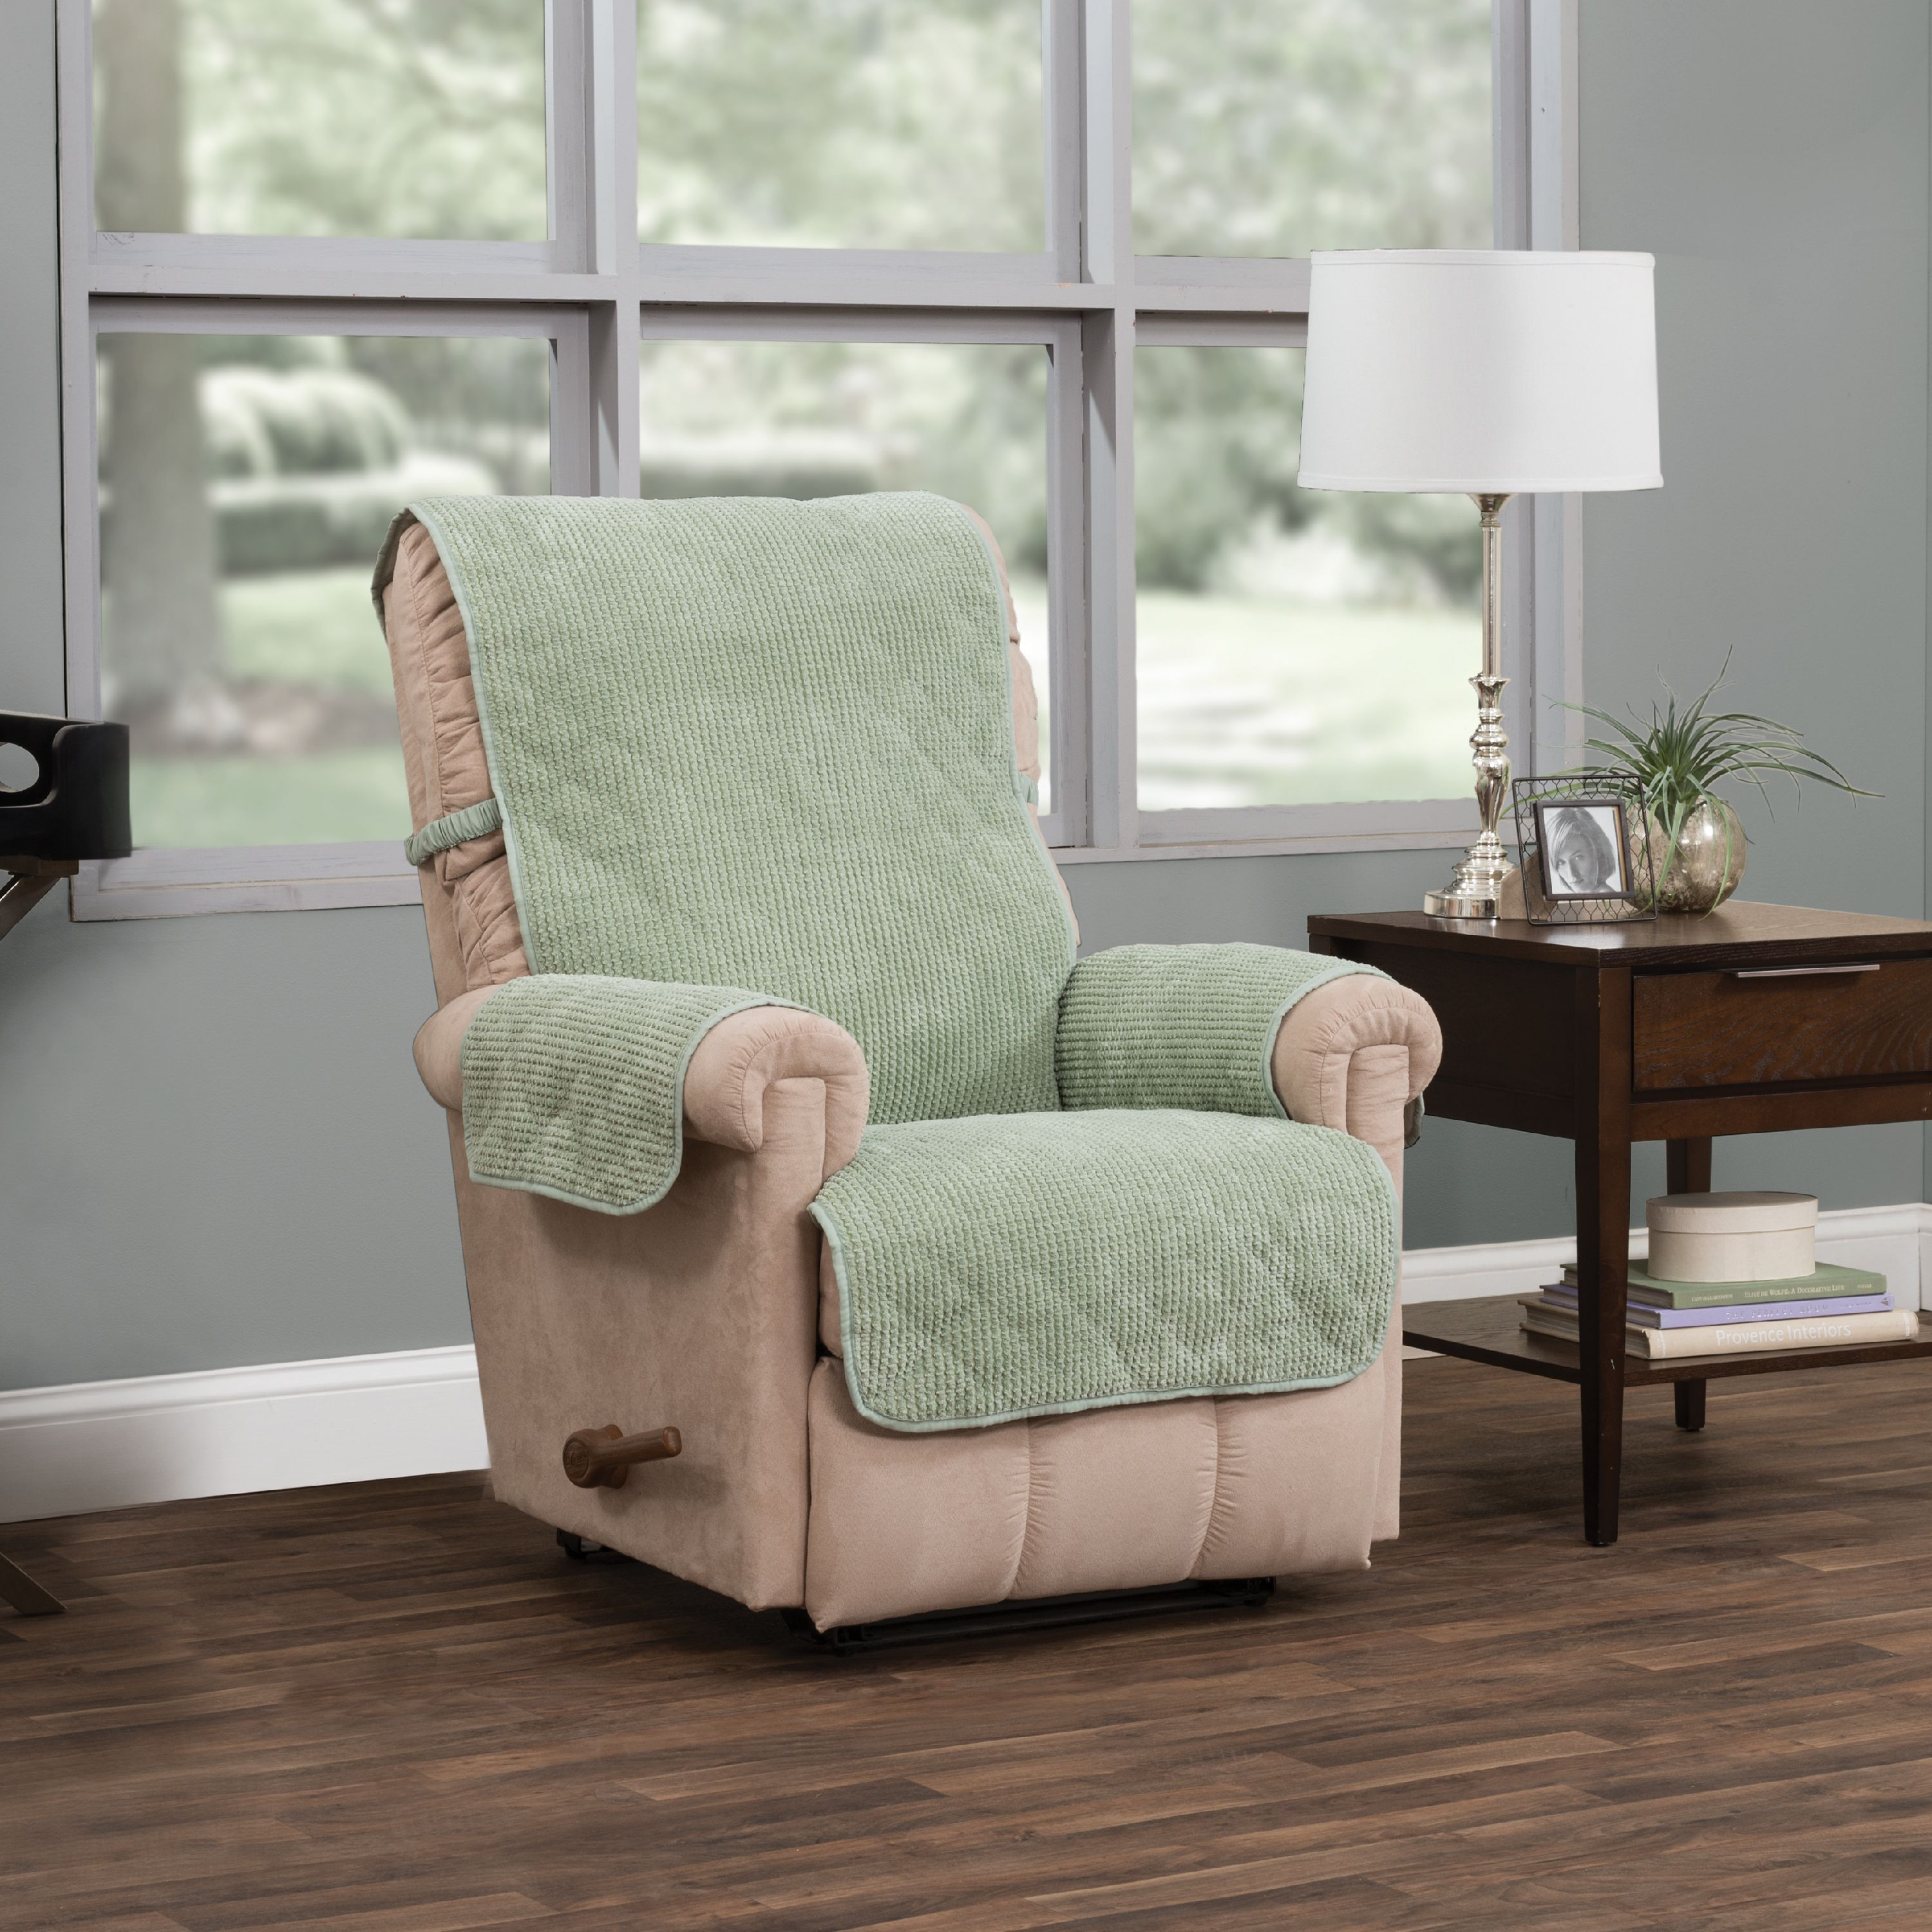 Innovative Textile Solutions Ripple Plush Recliner Furniture Cover Slipcover